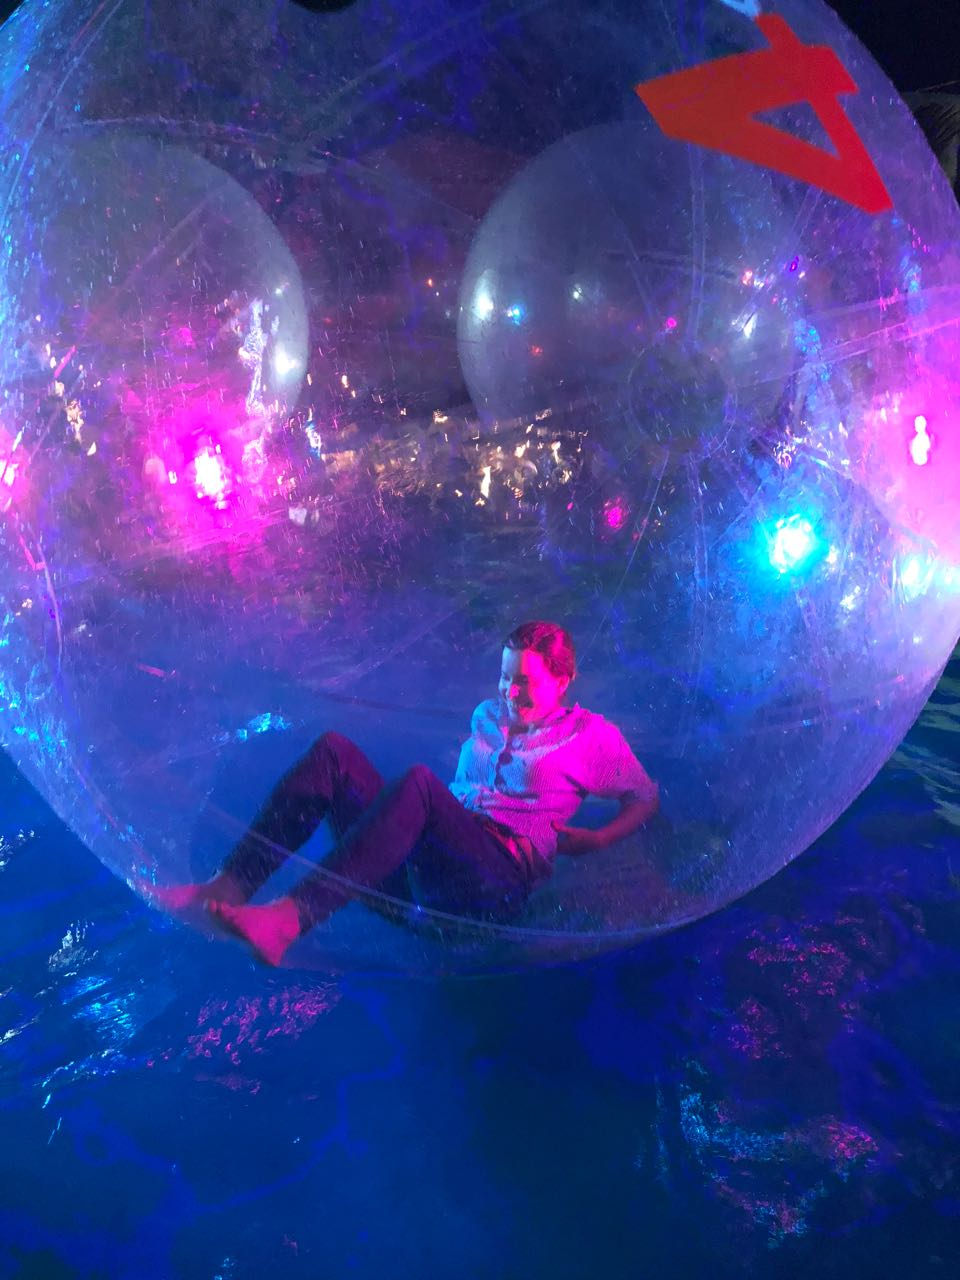 Floating in a bubble